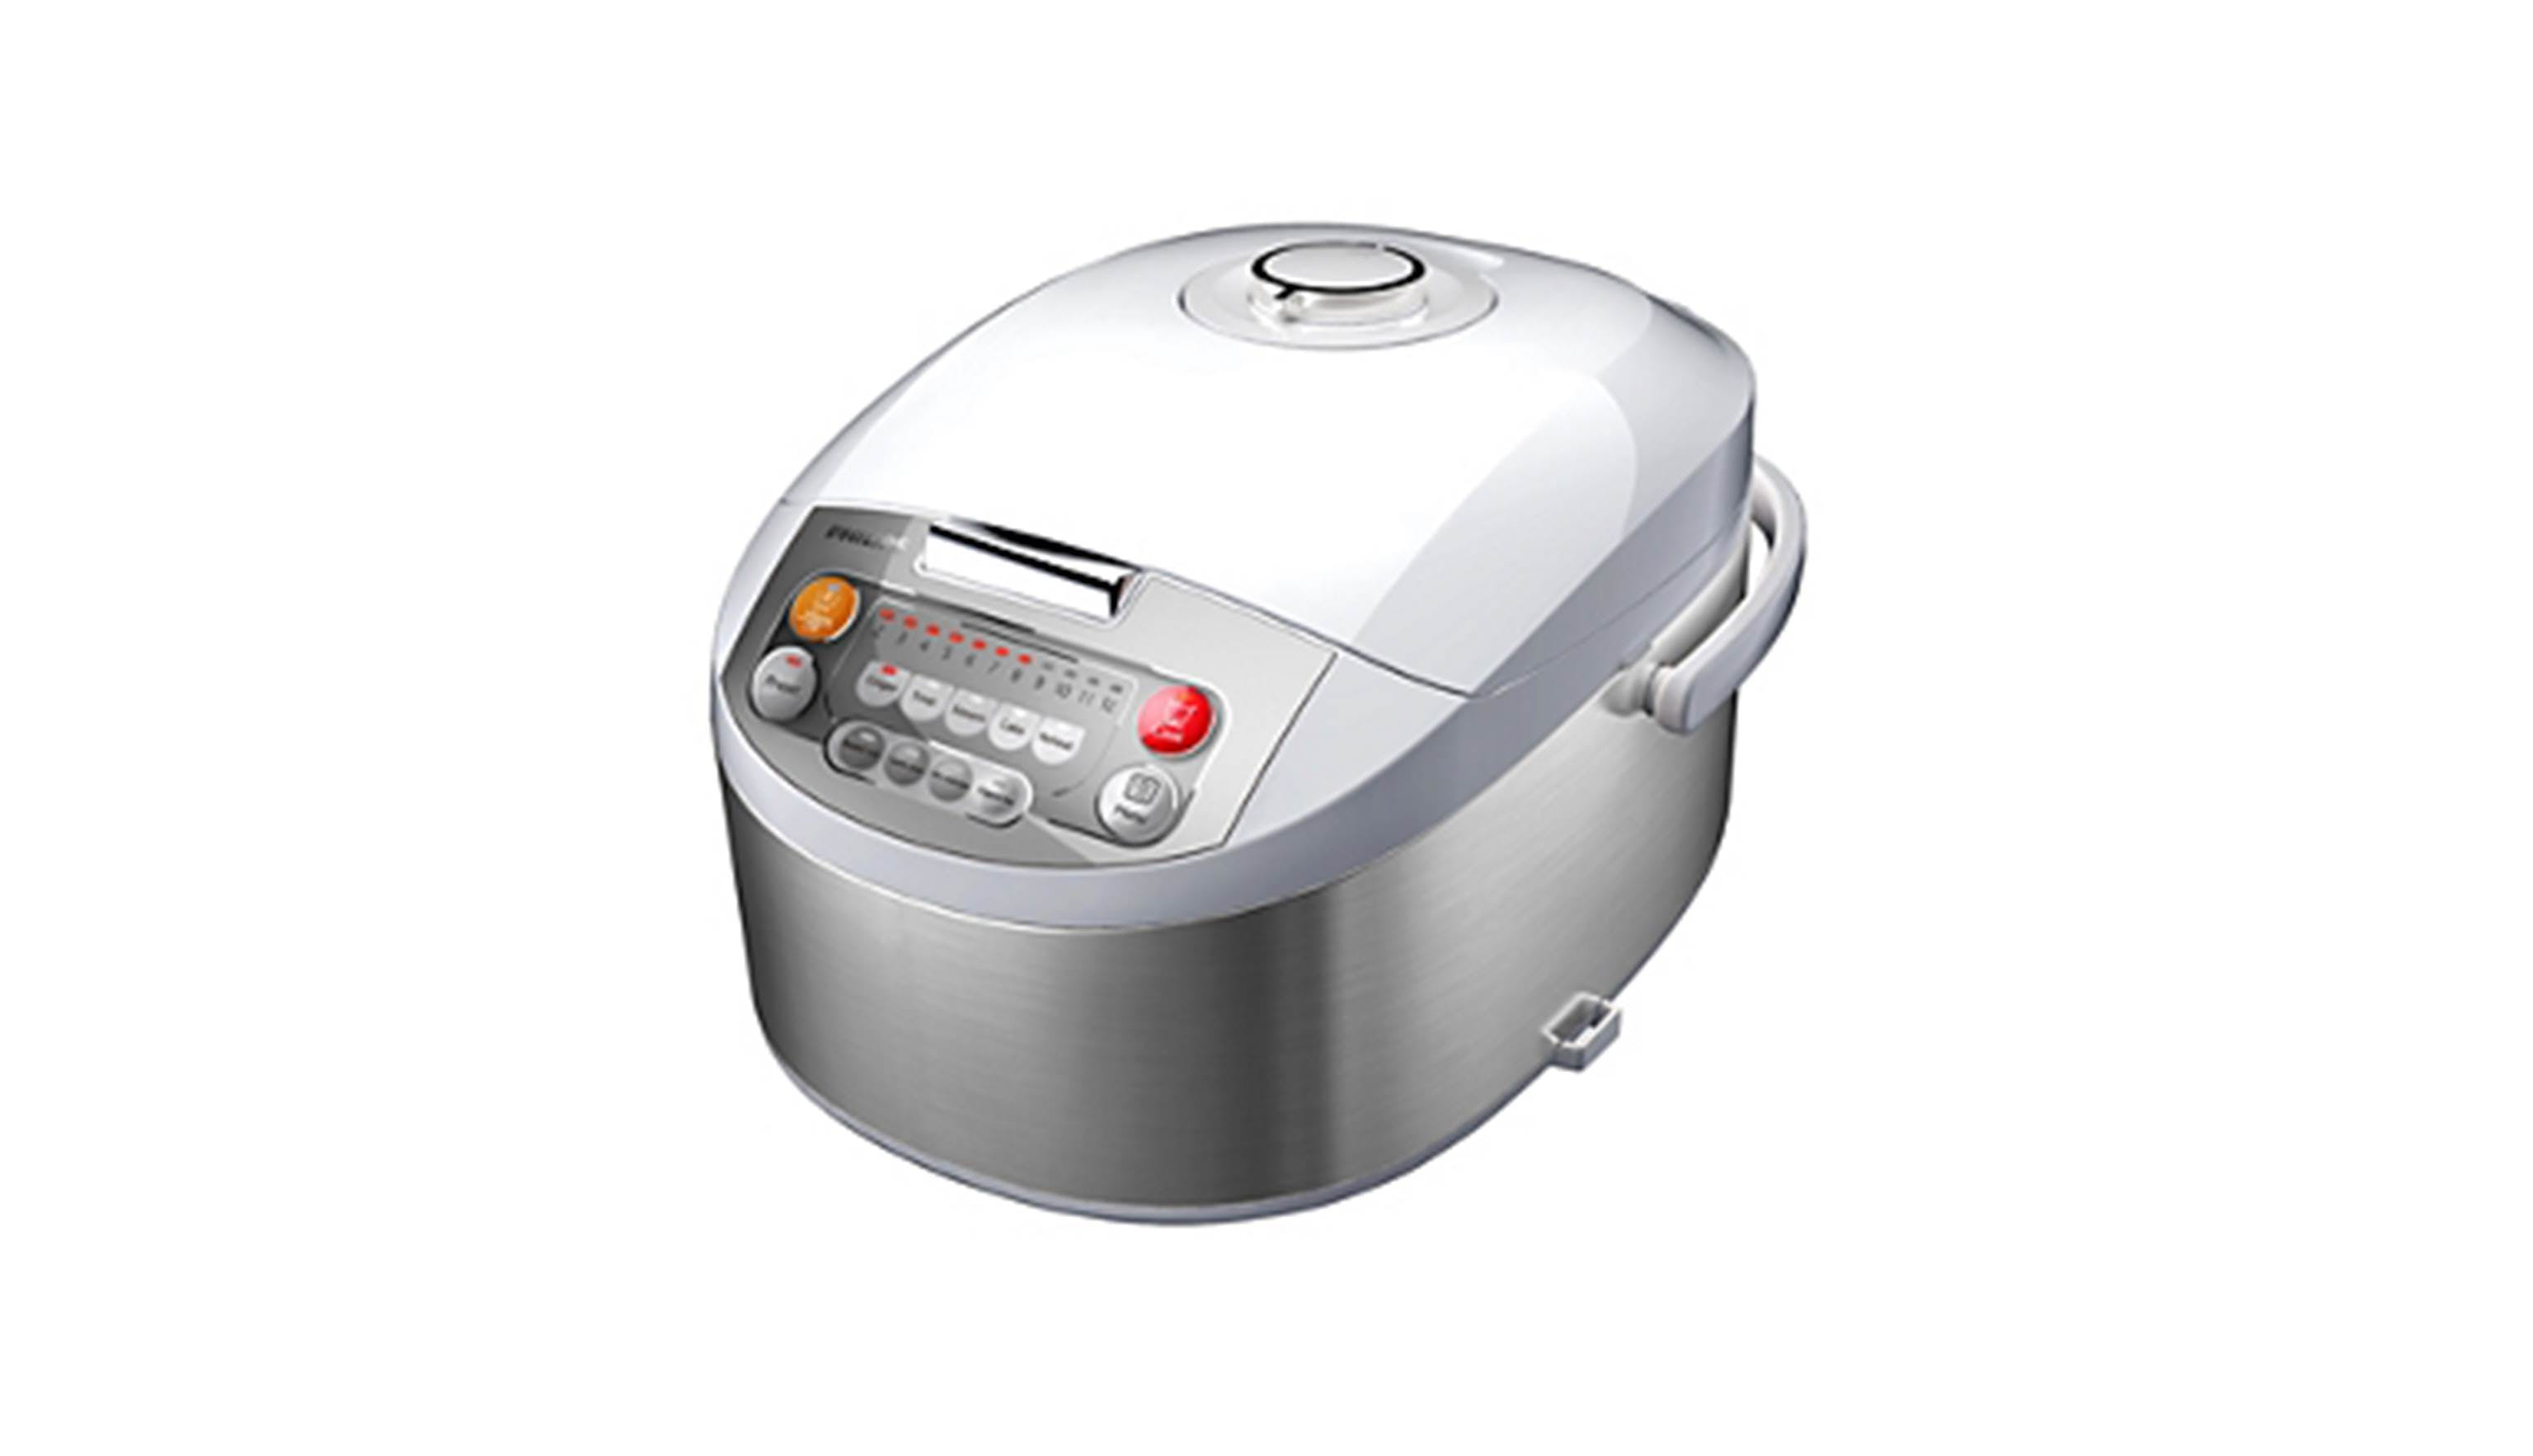 Philips Viva Collection Fuzzy Logic 1l Rice Cooker Harvey Norman